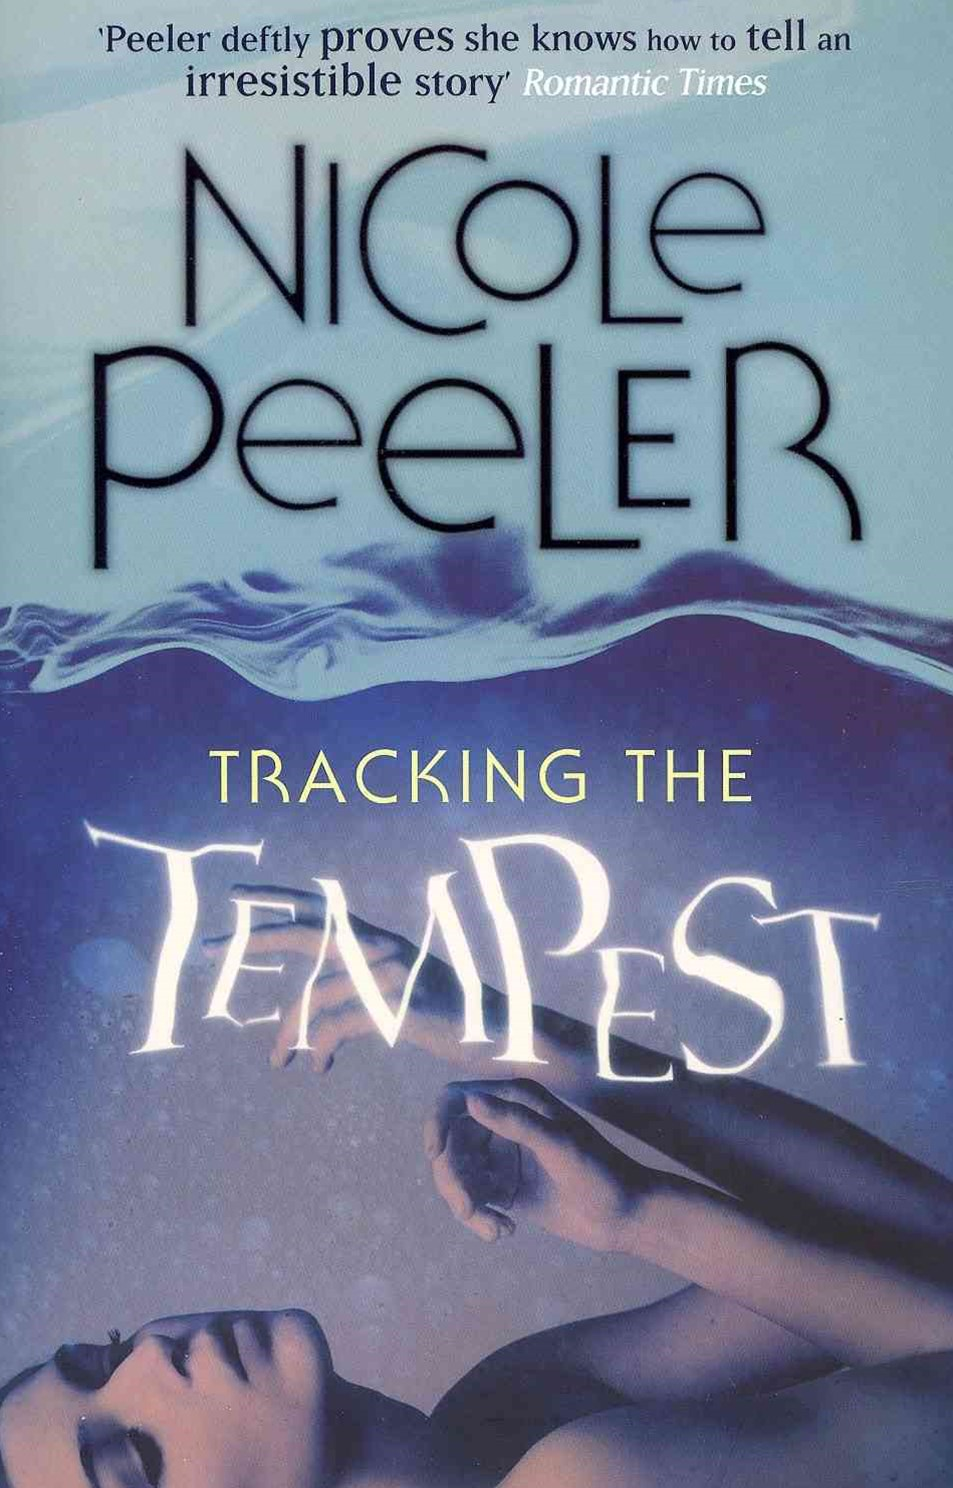 Tracking The Tempest